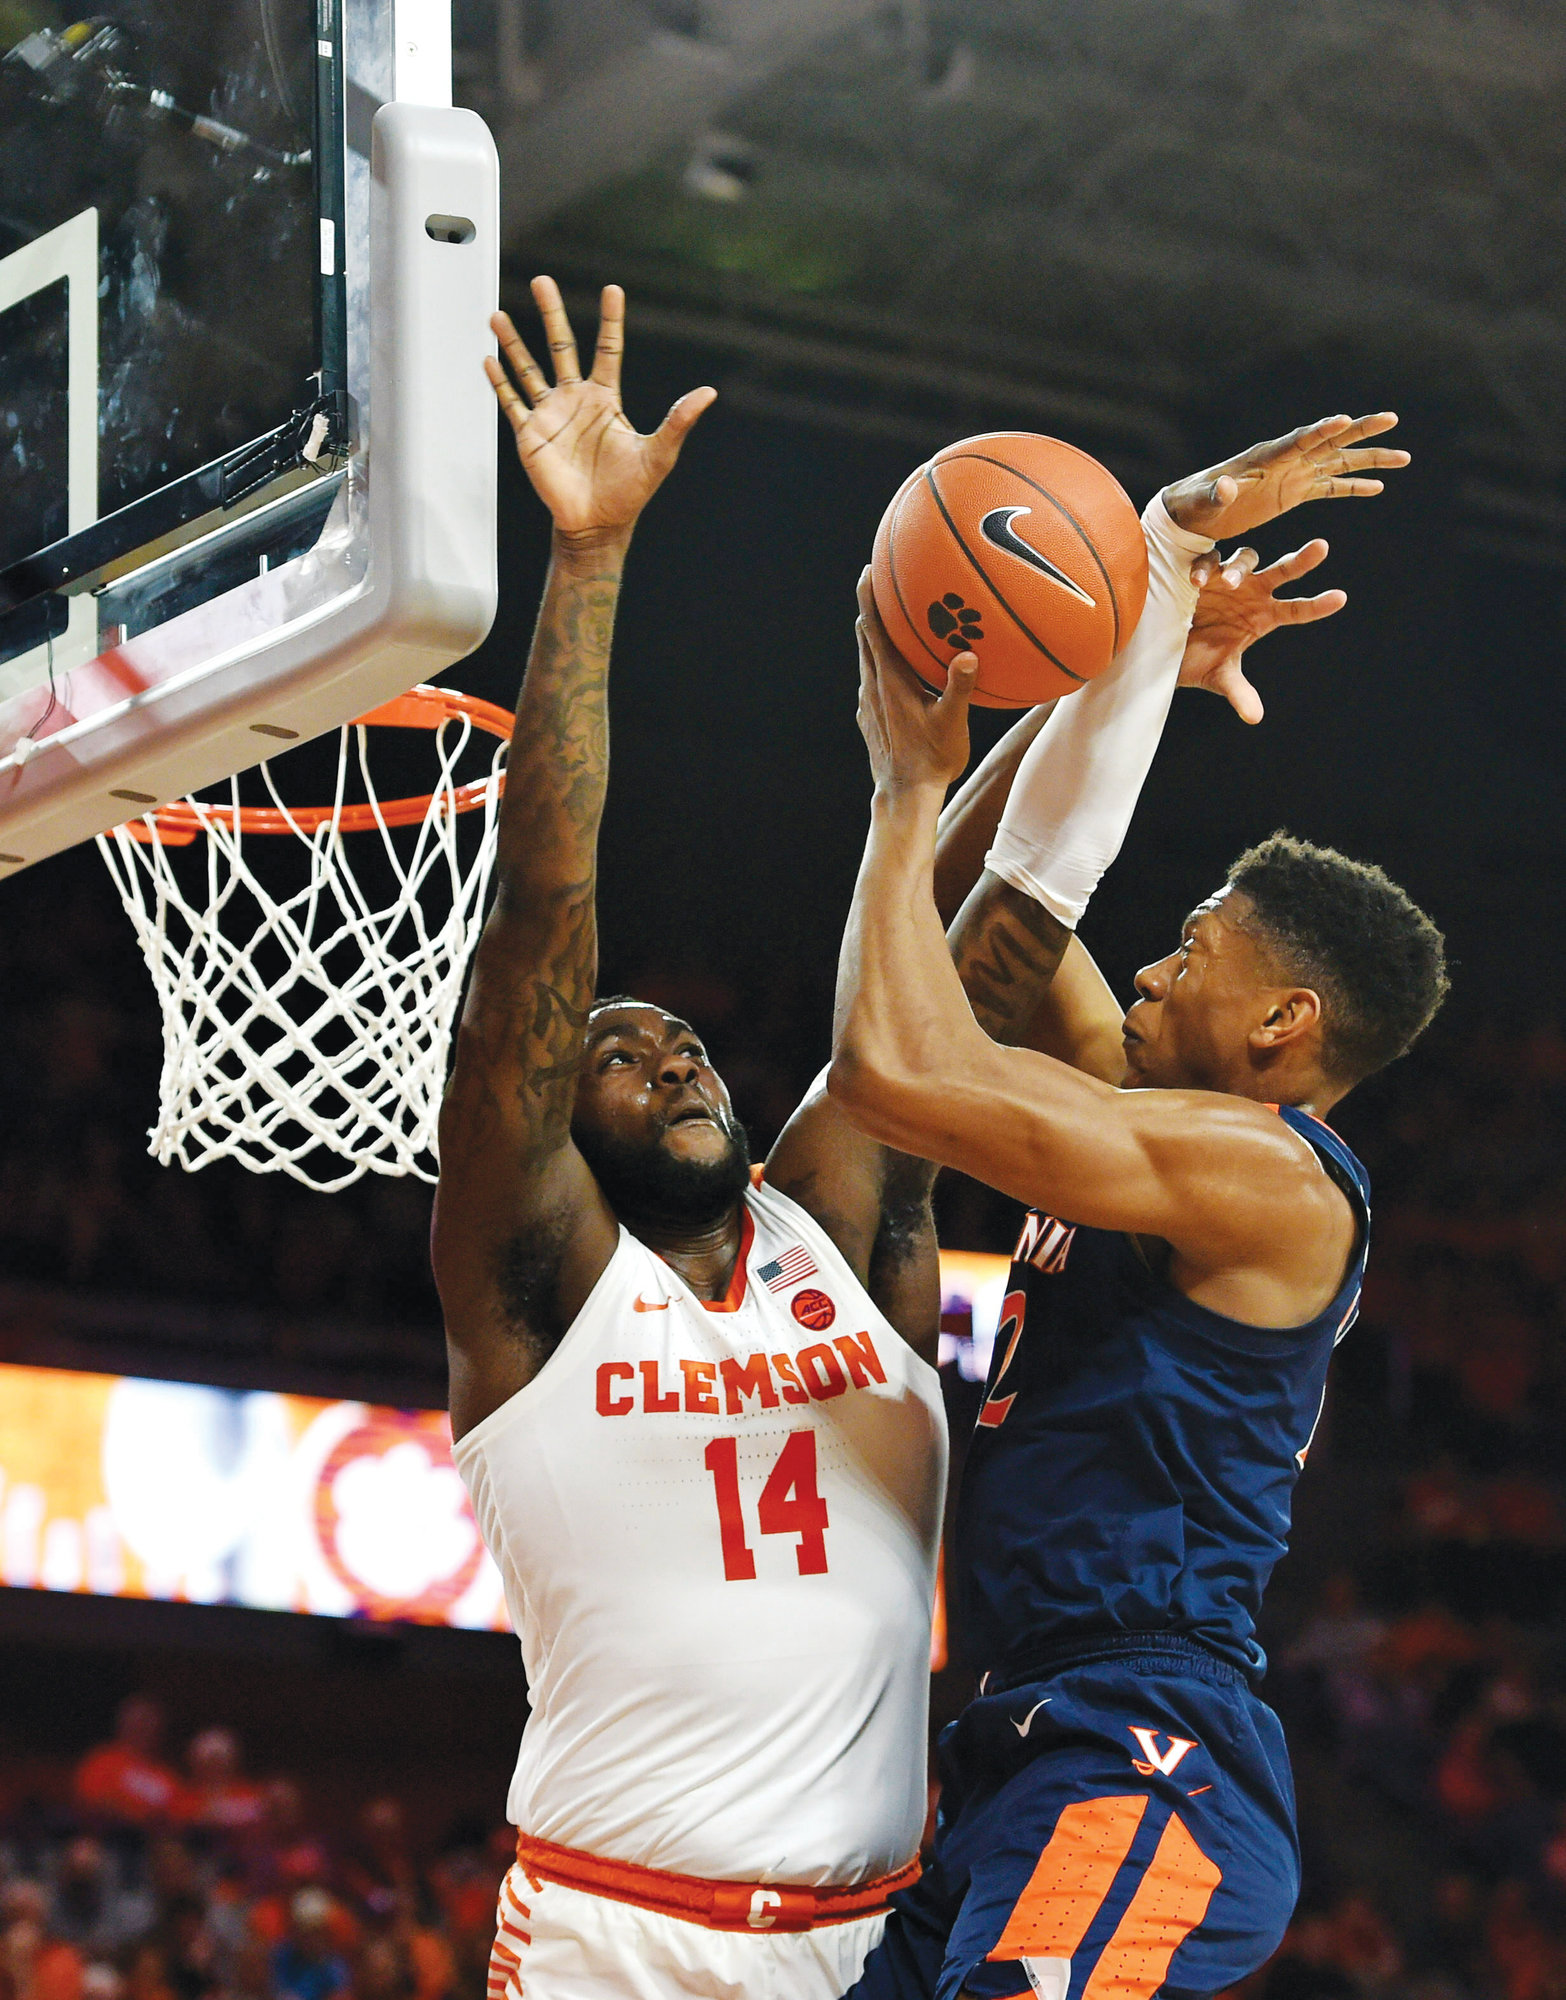 Virginia's DeAndre Hunter drives to the basket while defended by Clemson's Elijah Thomas during the first half of the Cavaliers' 63-43 victory over the Tigers on Saturday in Clemson.